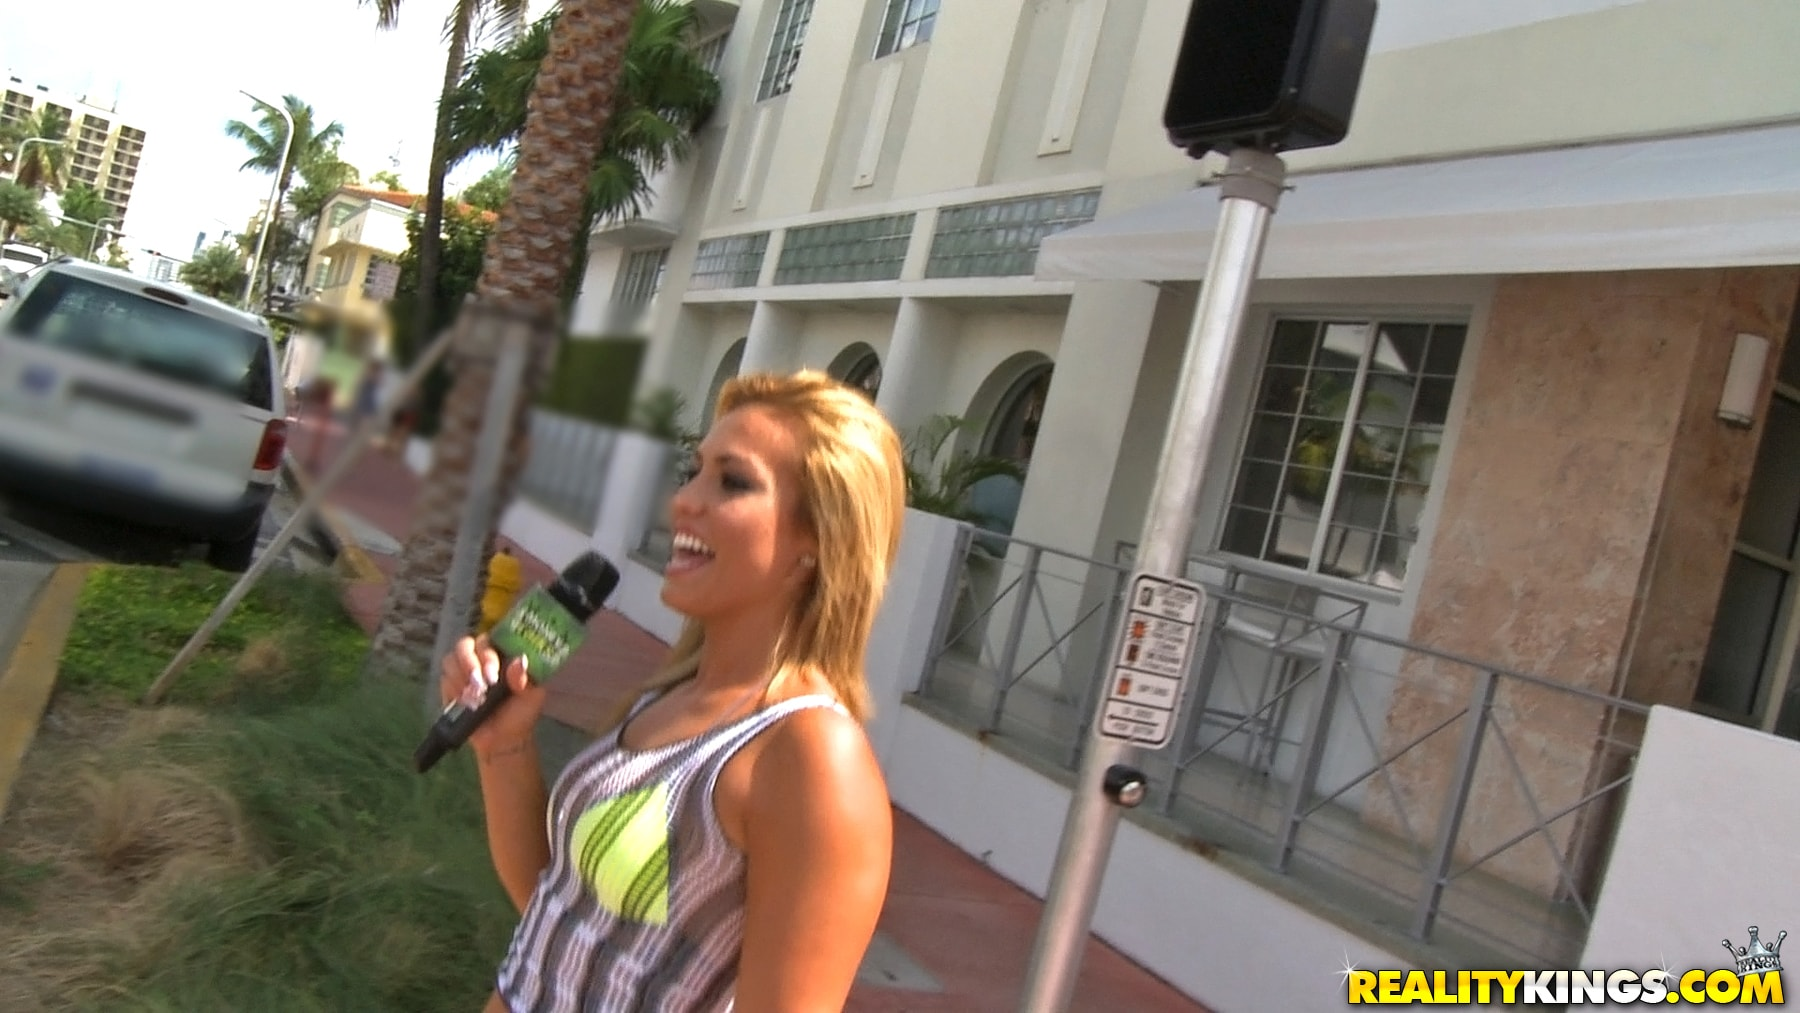 Reality Kings 'Along for the ride' starring Sophia Leone (Photo 1)